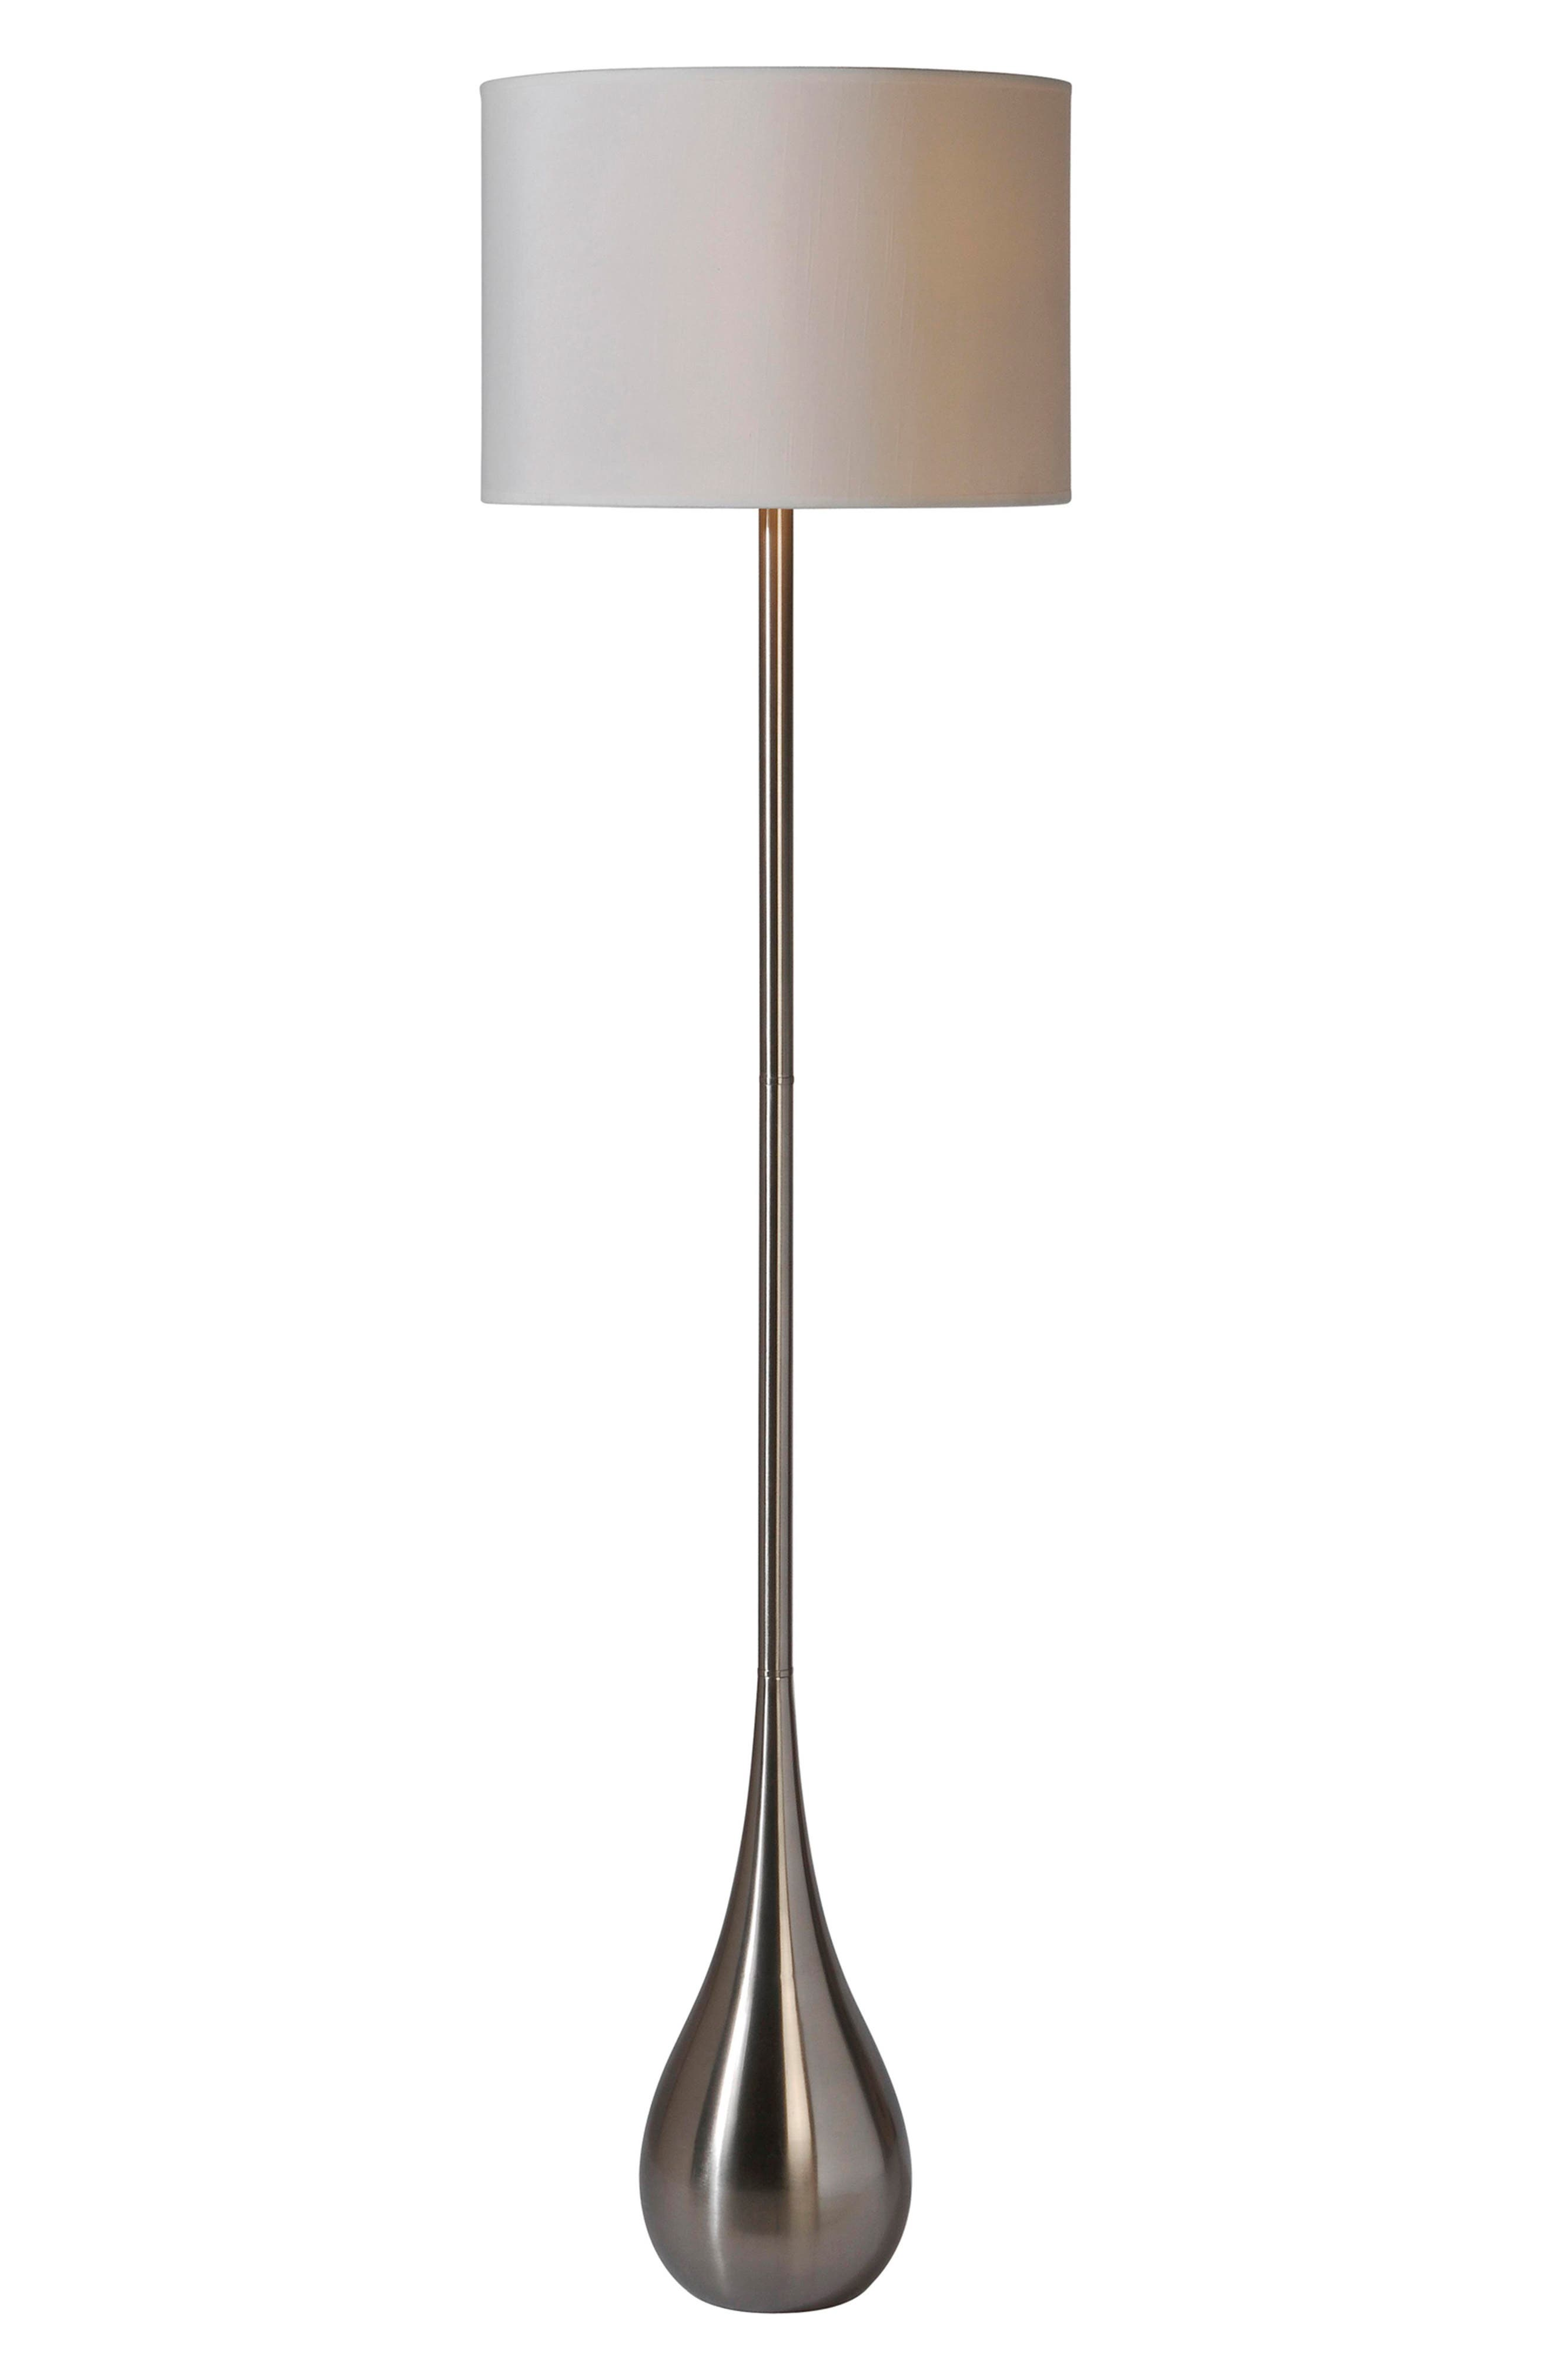 Satin Nickel Floor Lamp,                         Main,                         color, 040